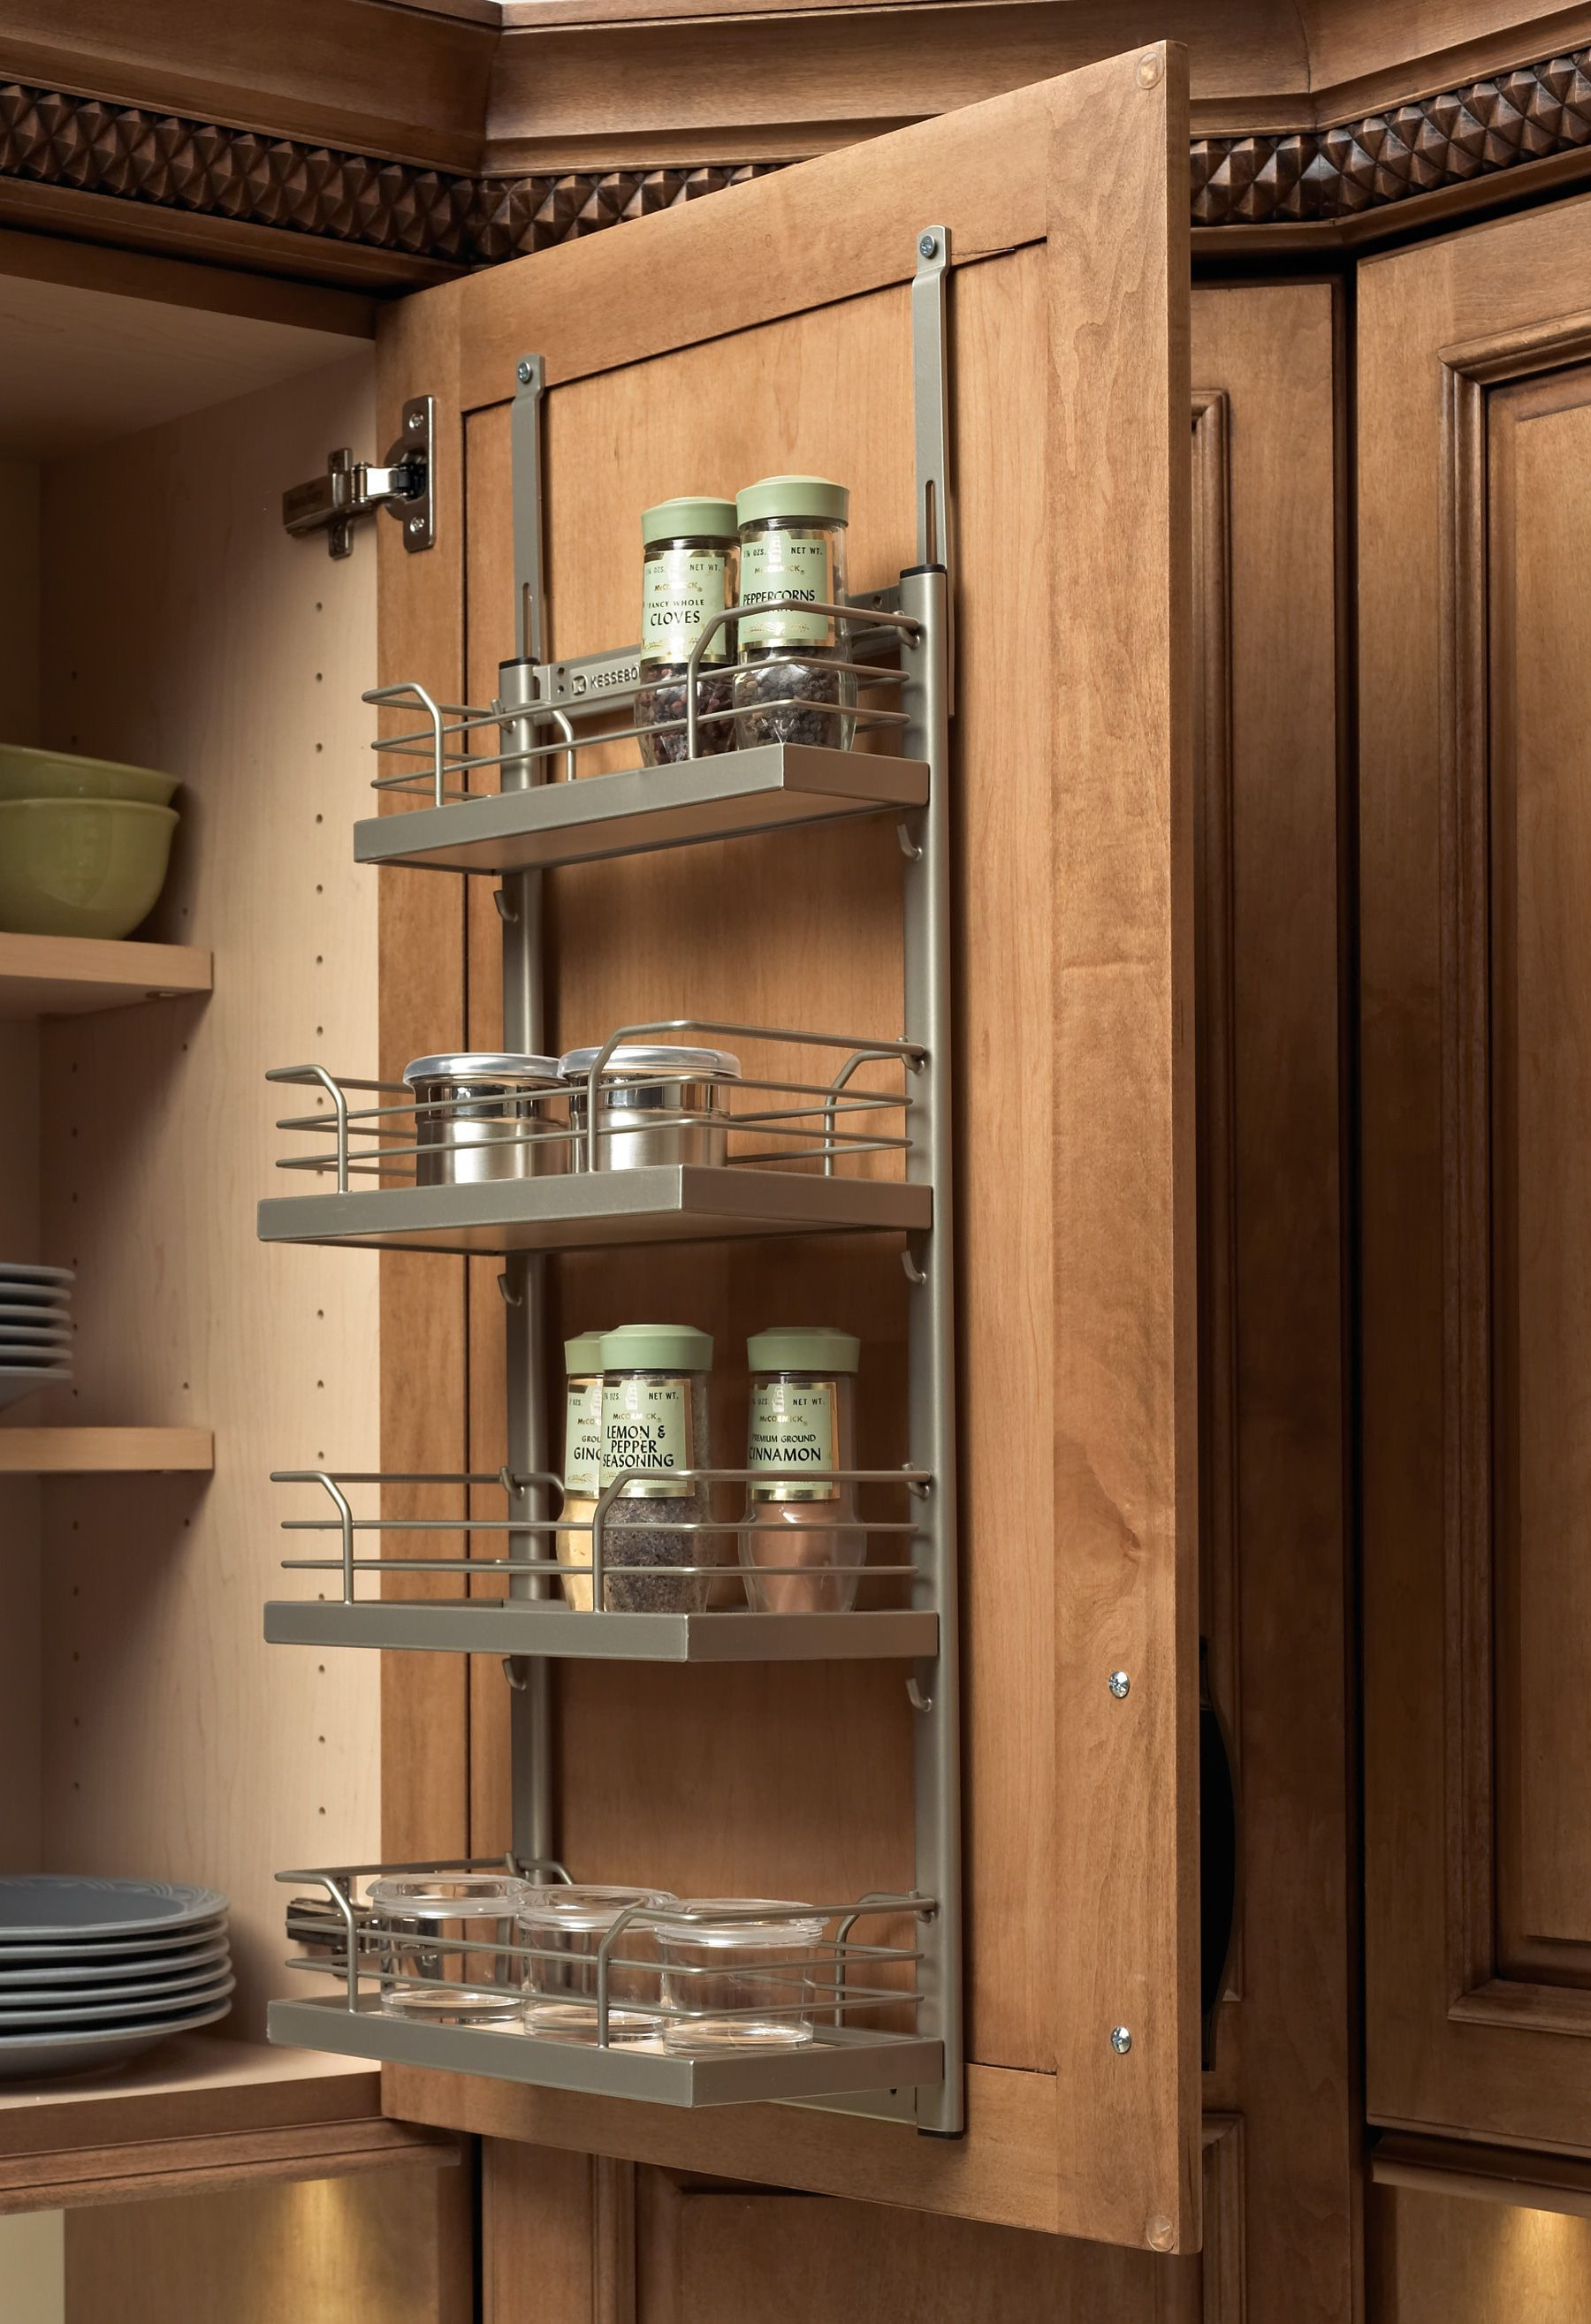 Cabinet Door Shelves Beautiful Wall Spice Rack Use In Bathroom for Ting Product Off